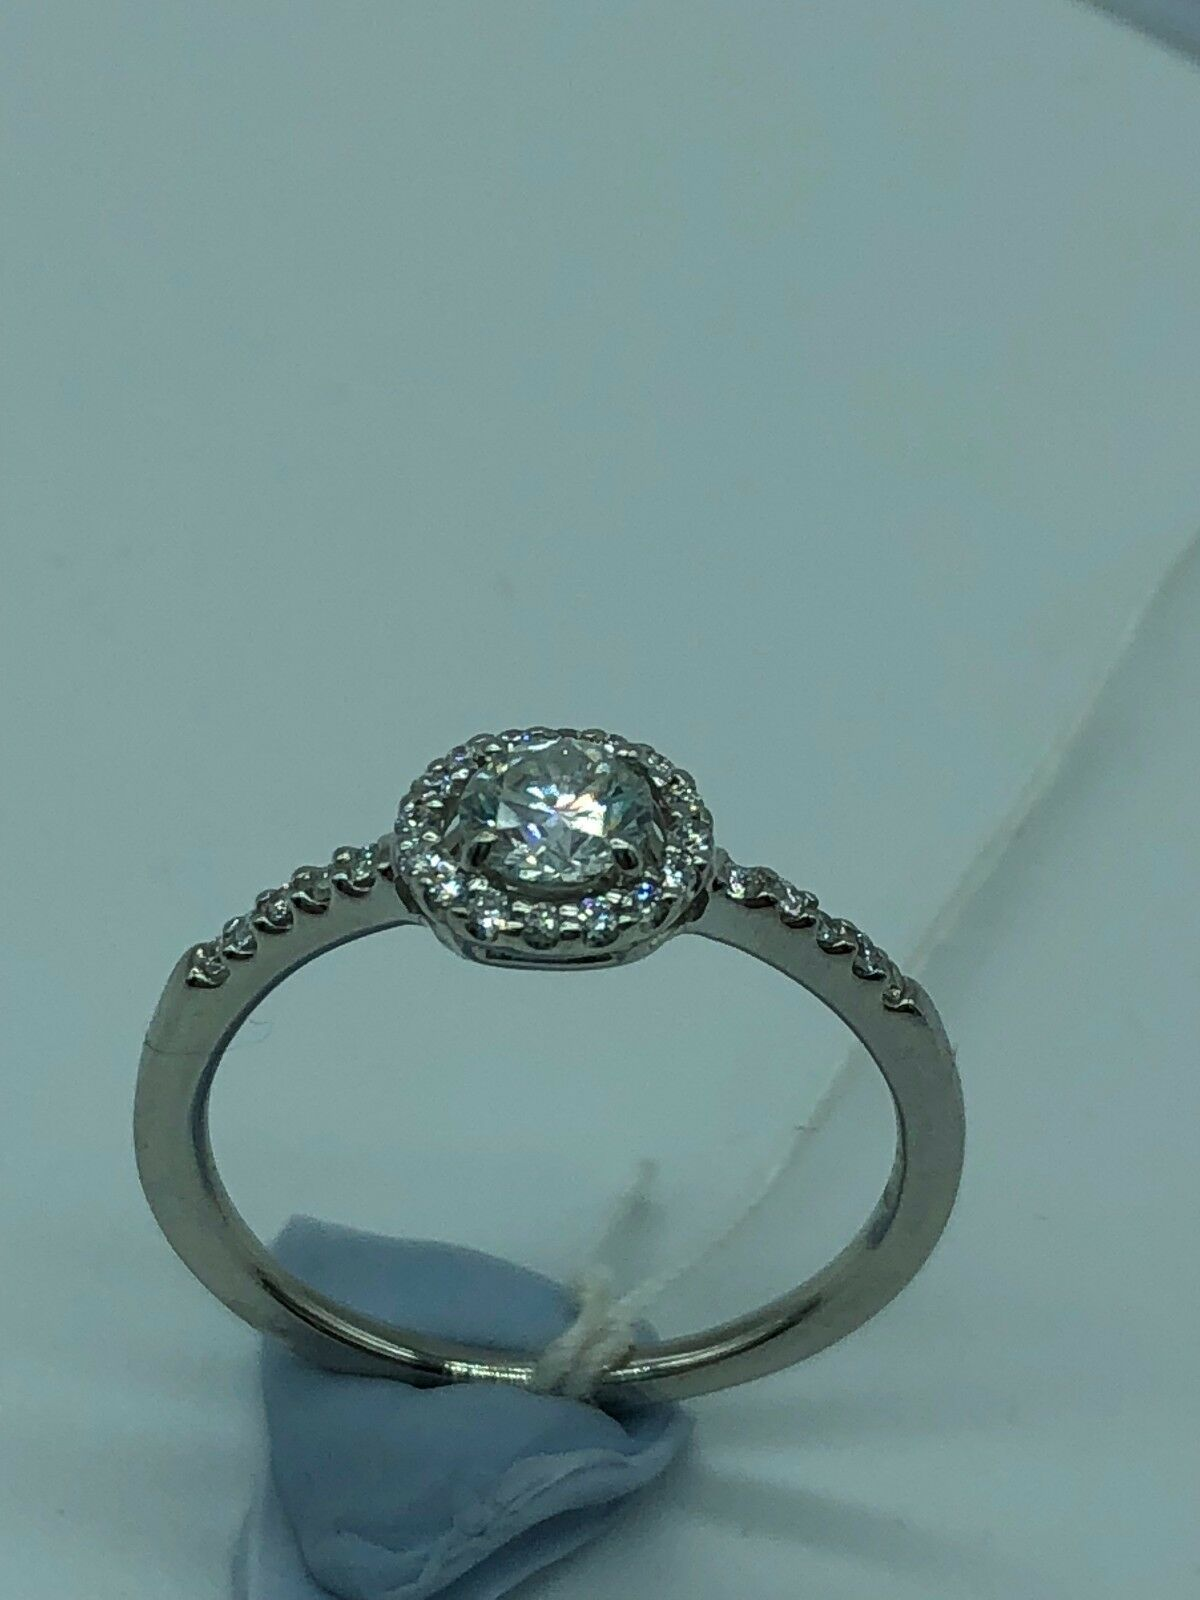 Diamond engagement ring with halo and diamond shoulders